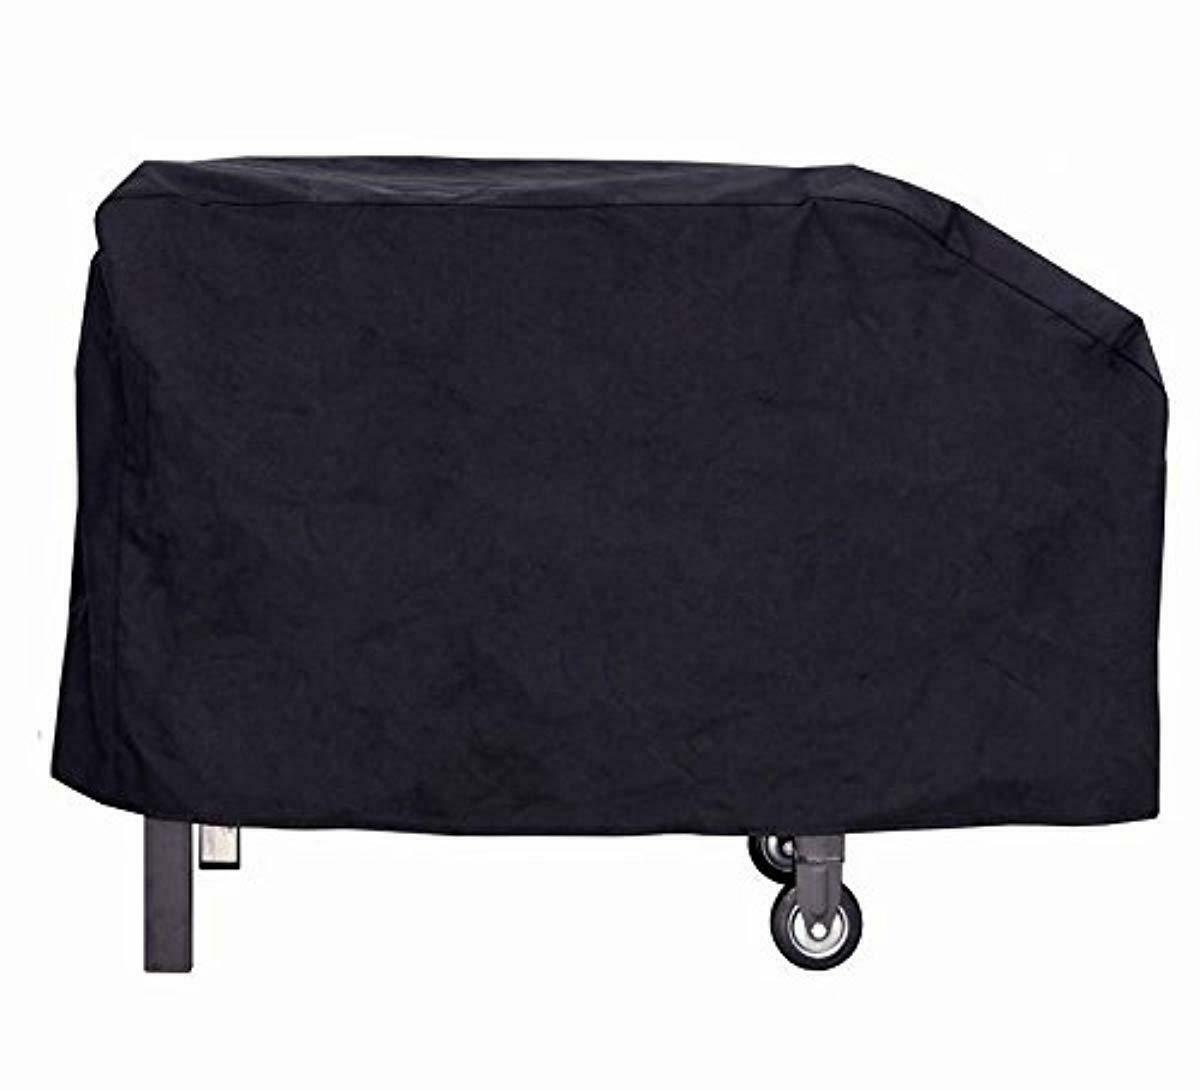 Outdoor Griddle Accessories Grill and Griddle Cover for Blac